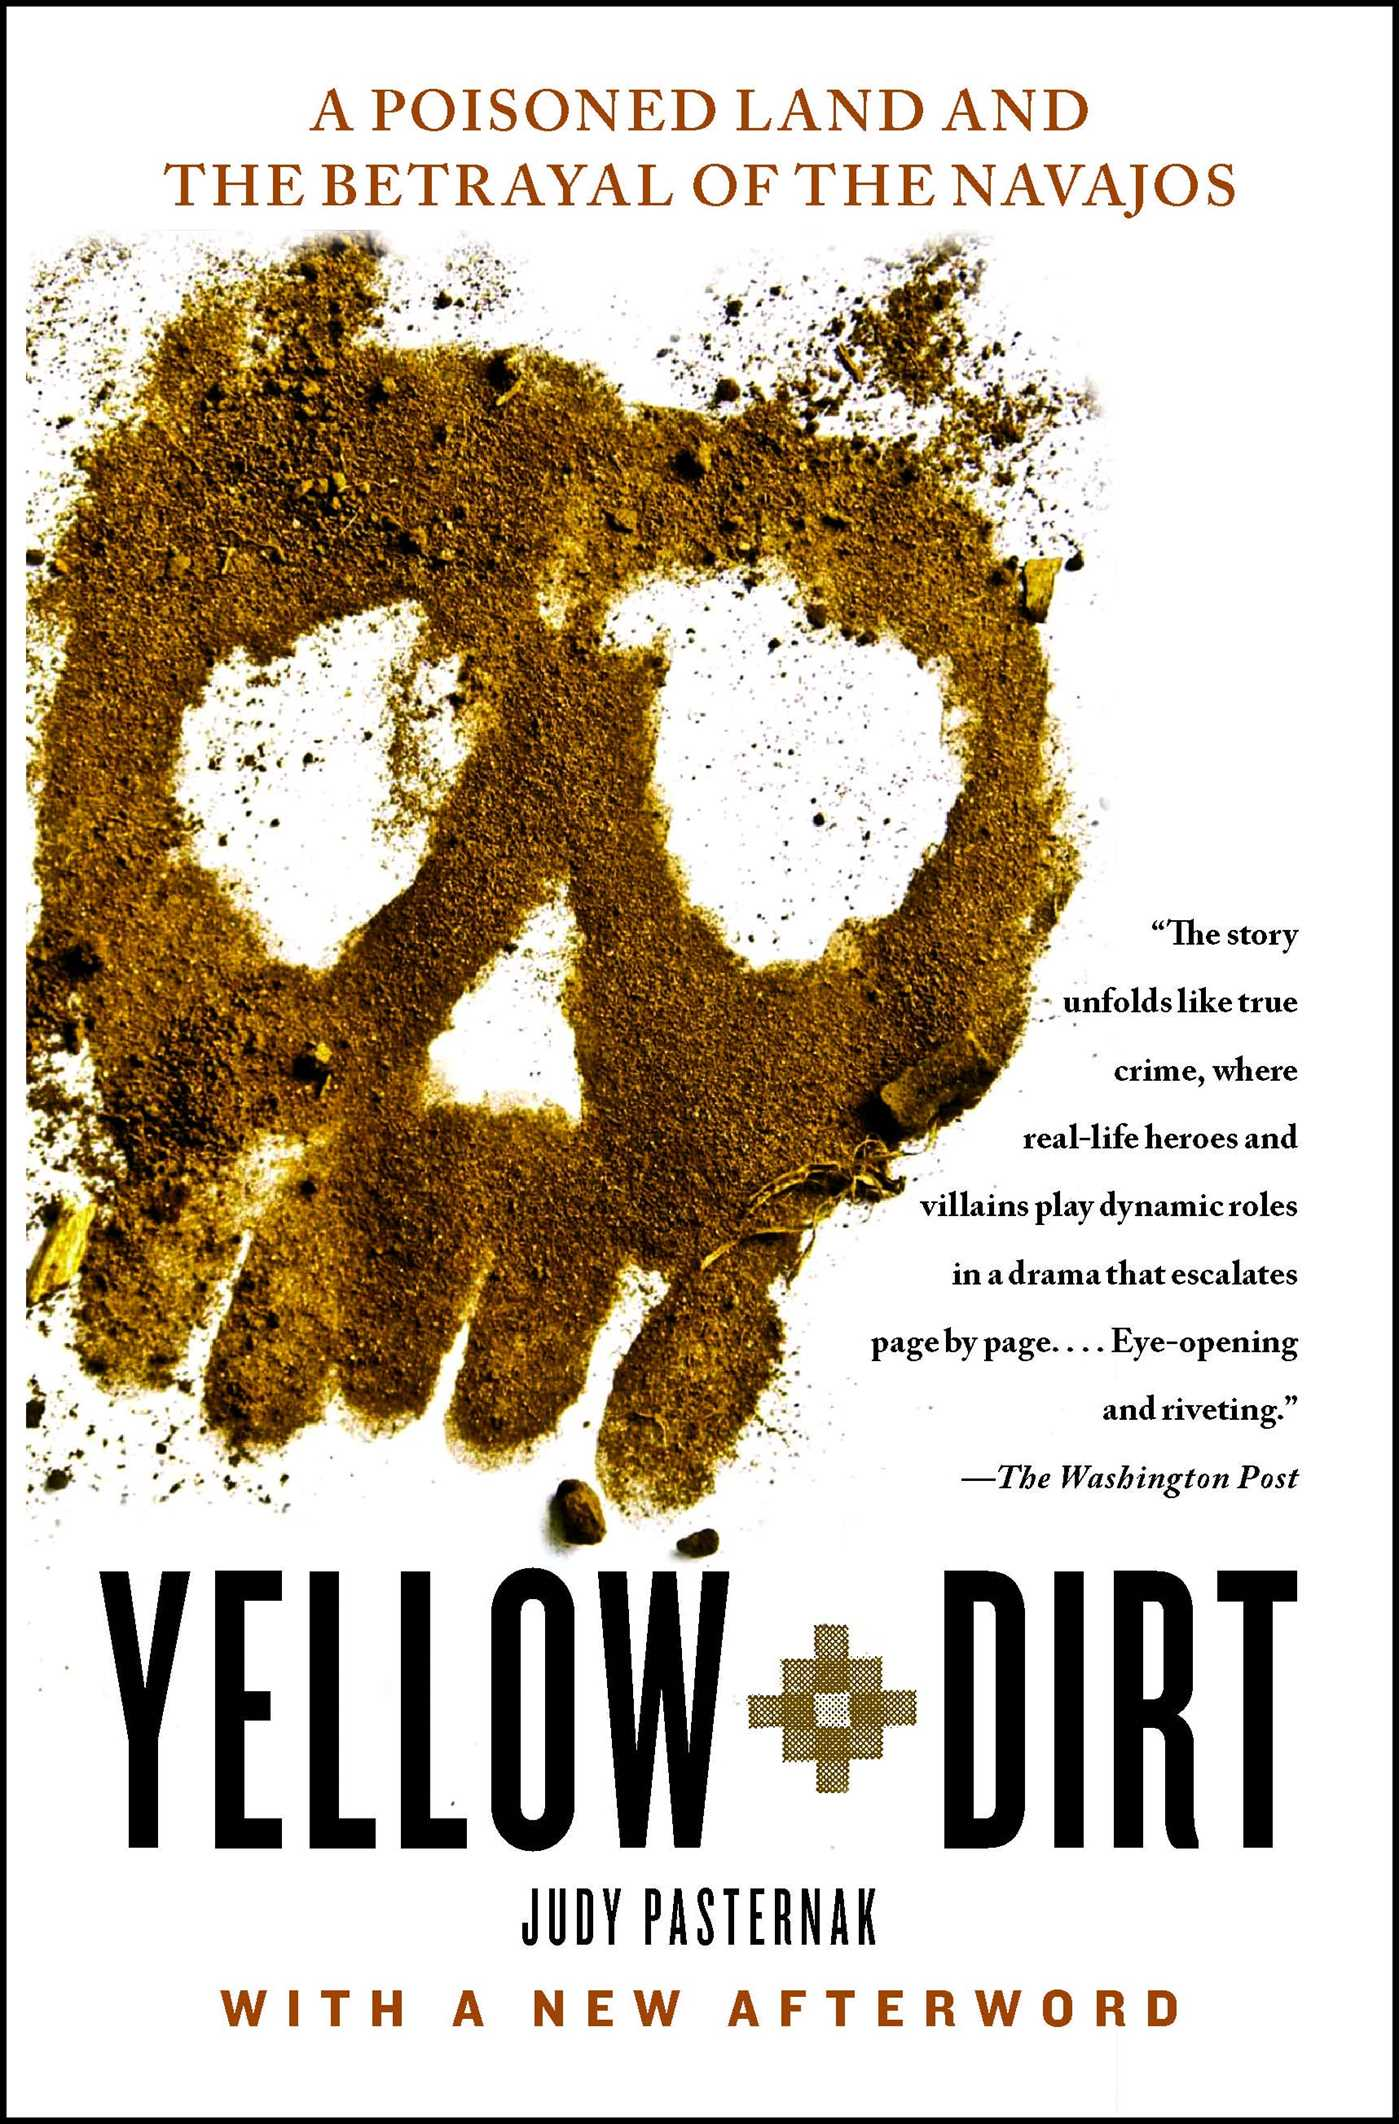 Yellow dirt 9781439100462 hr